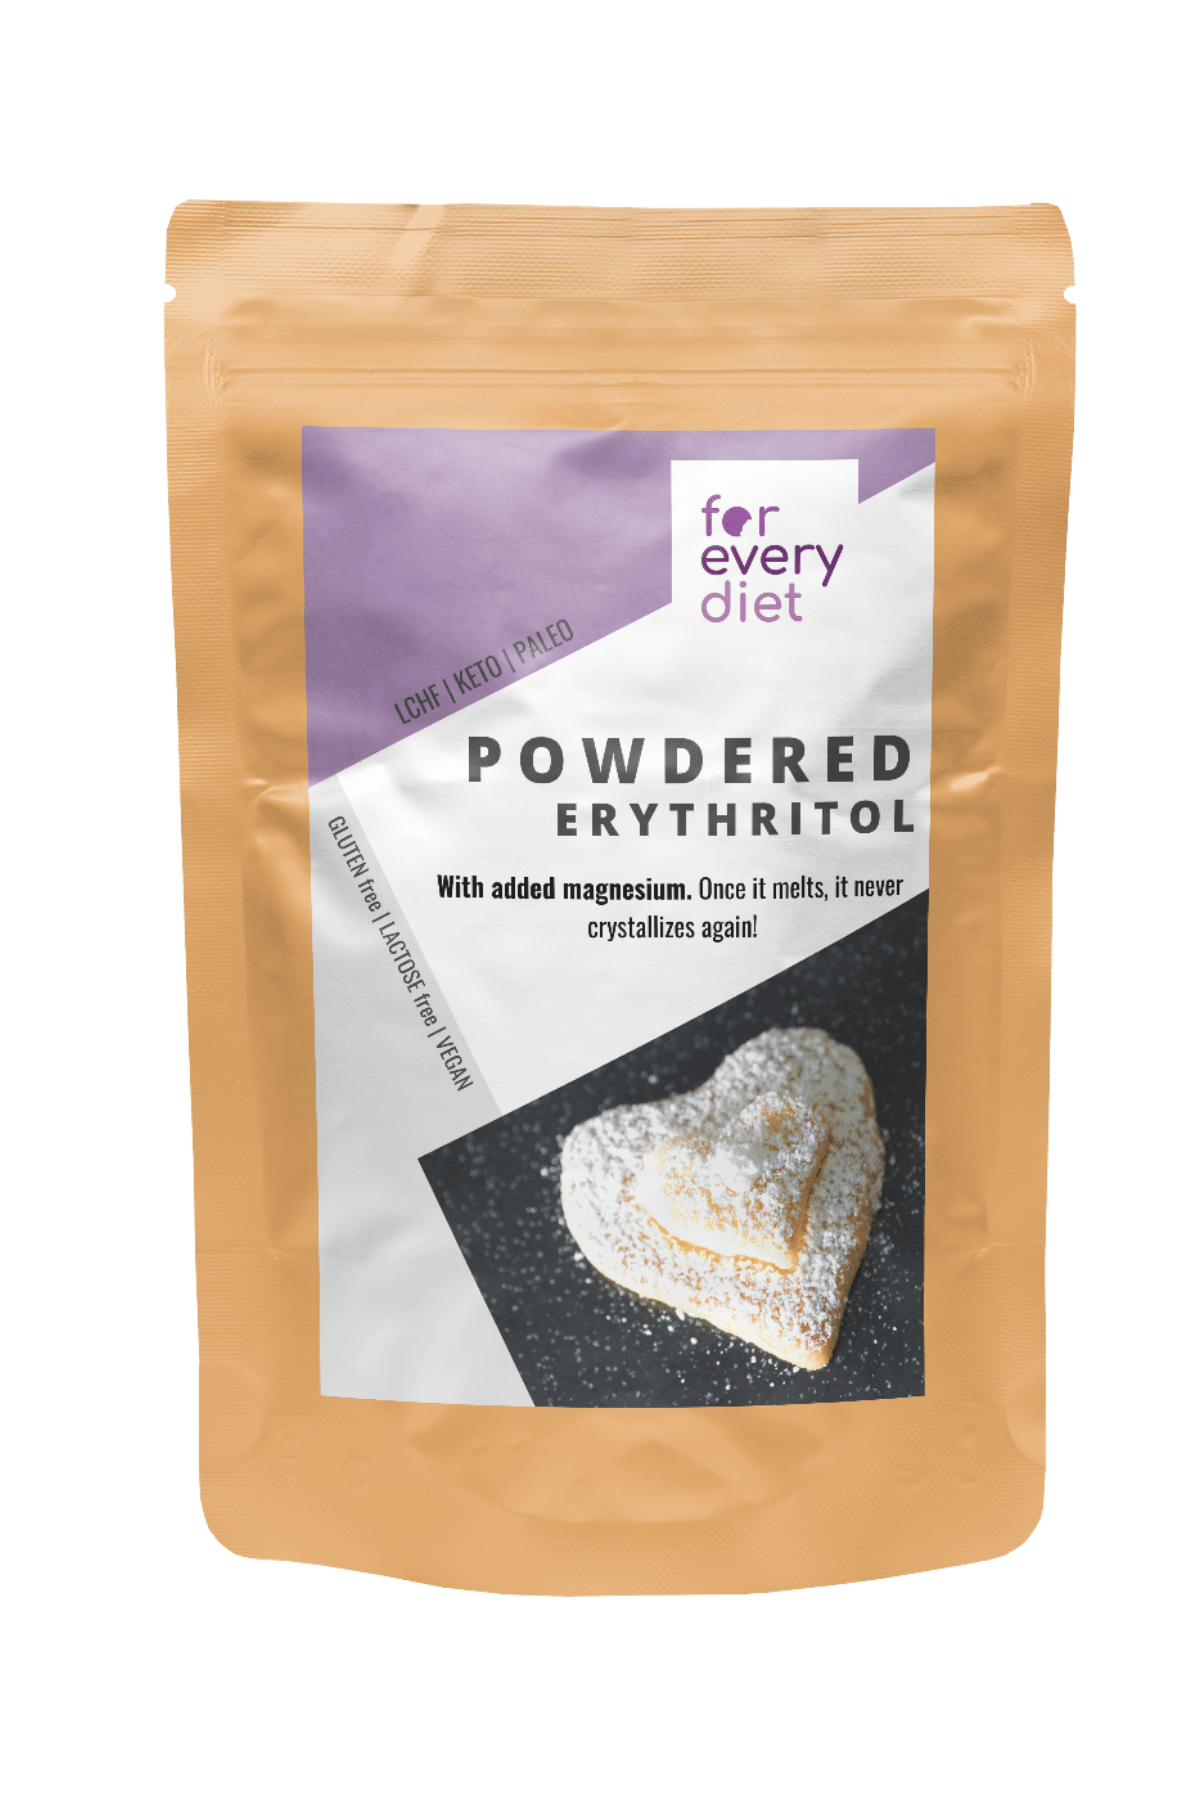 POWDERED ERYTHRITOL with magnesium - Natural sweetener